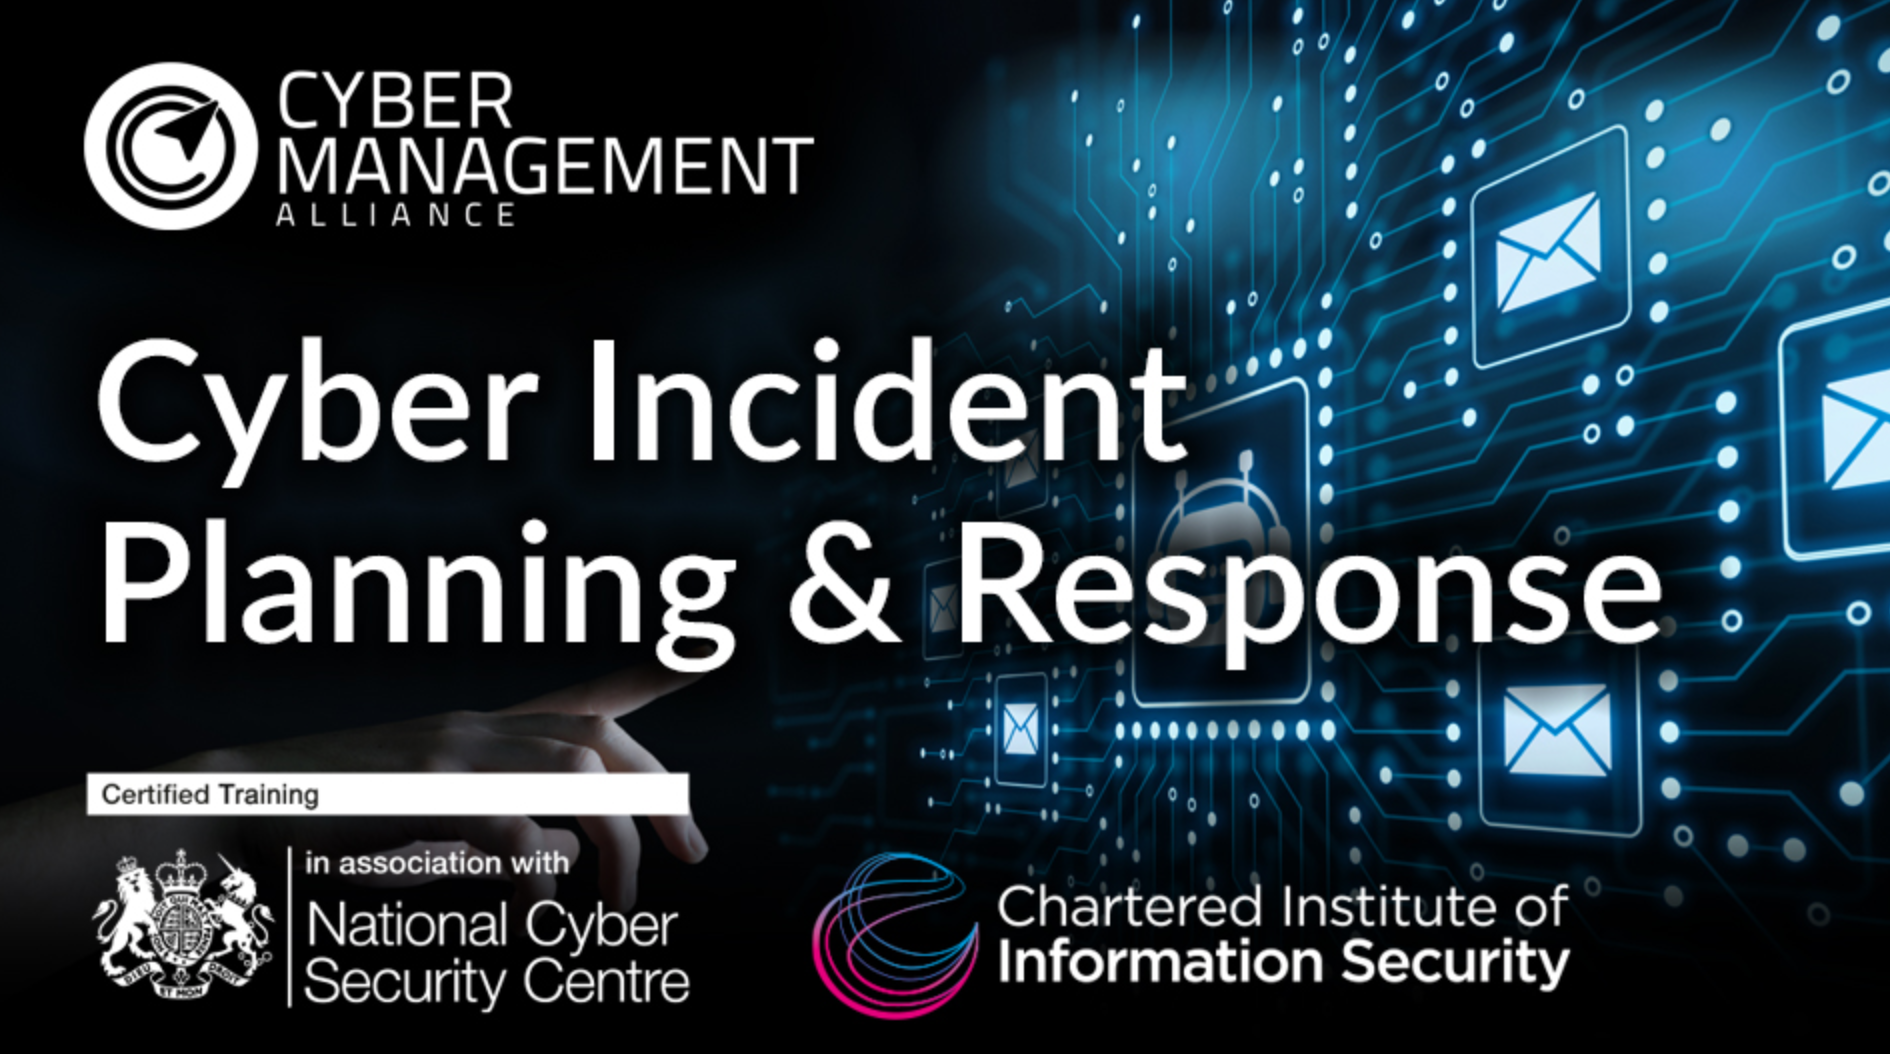 Cyber Incident Planning & Response Course homepage; courtesy of Cyber Management Alliance.